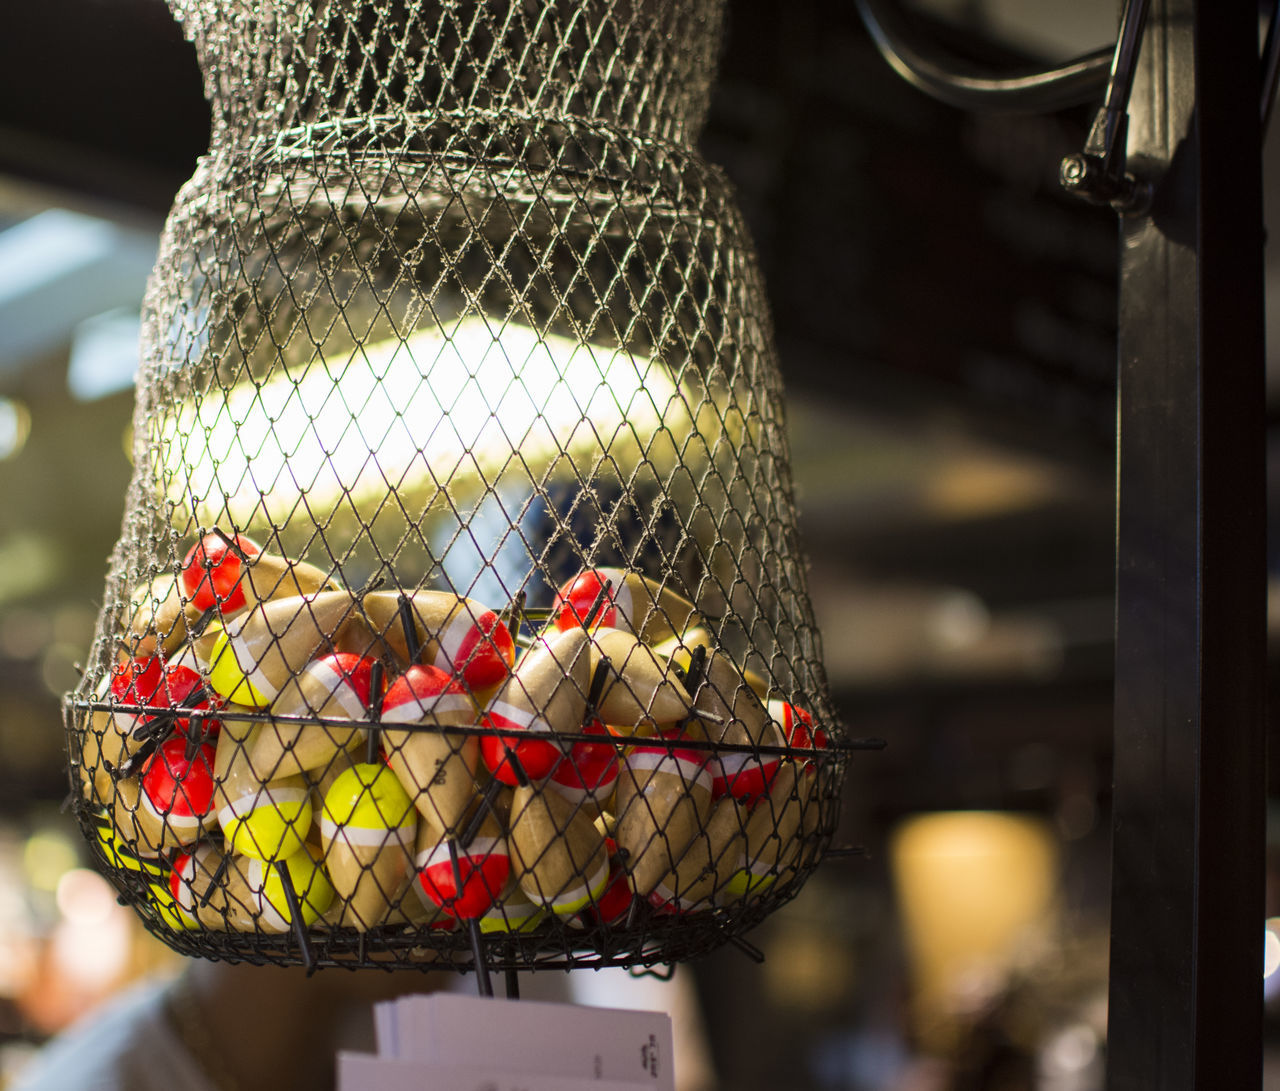 Lights Basket Close-up Day Fish Pond Focus On Foreground Food Freshness Indoors  Market Stall Neon Life No People